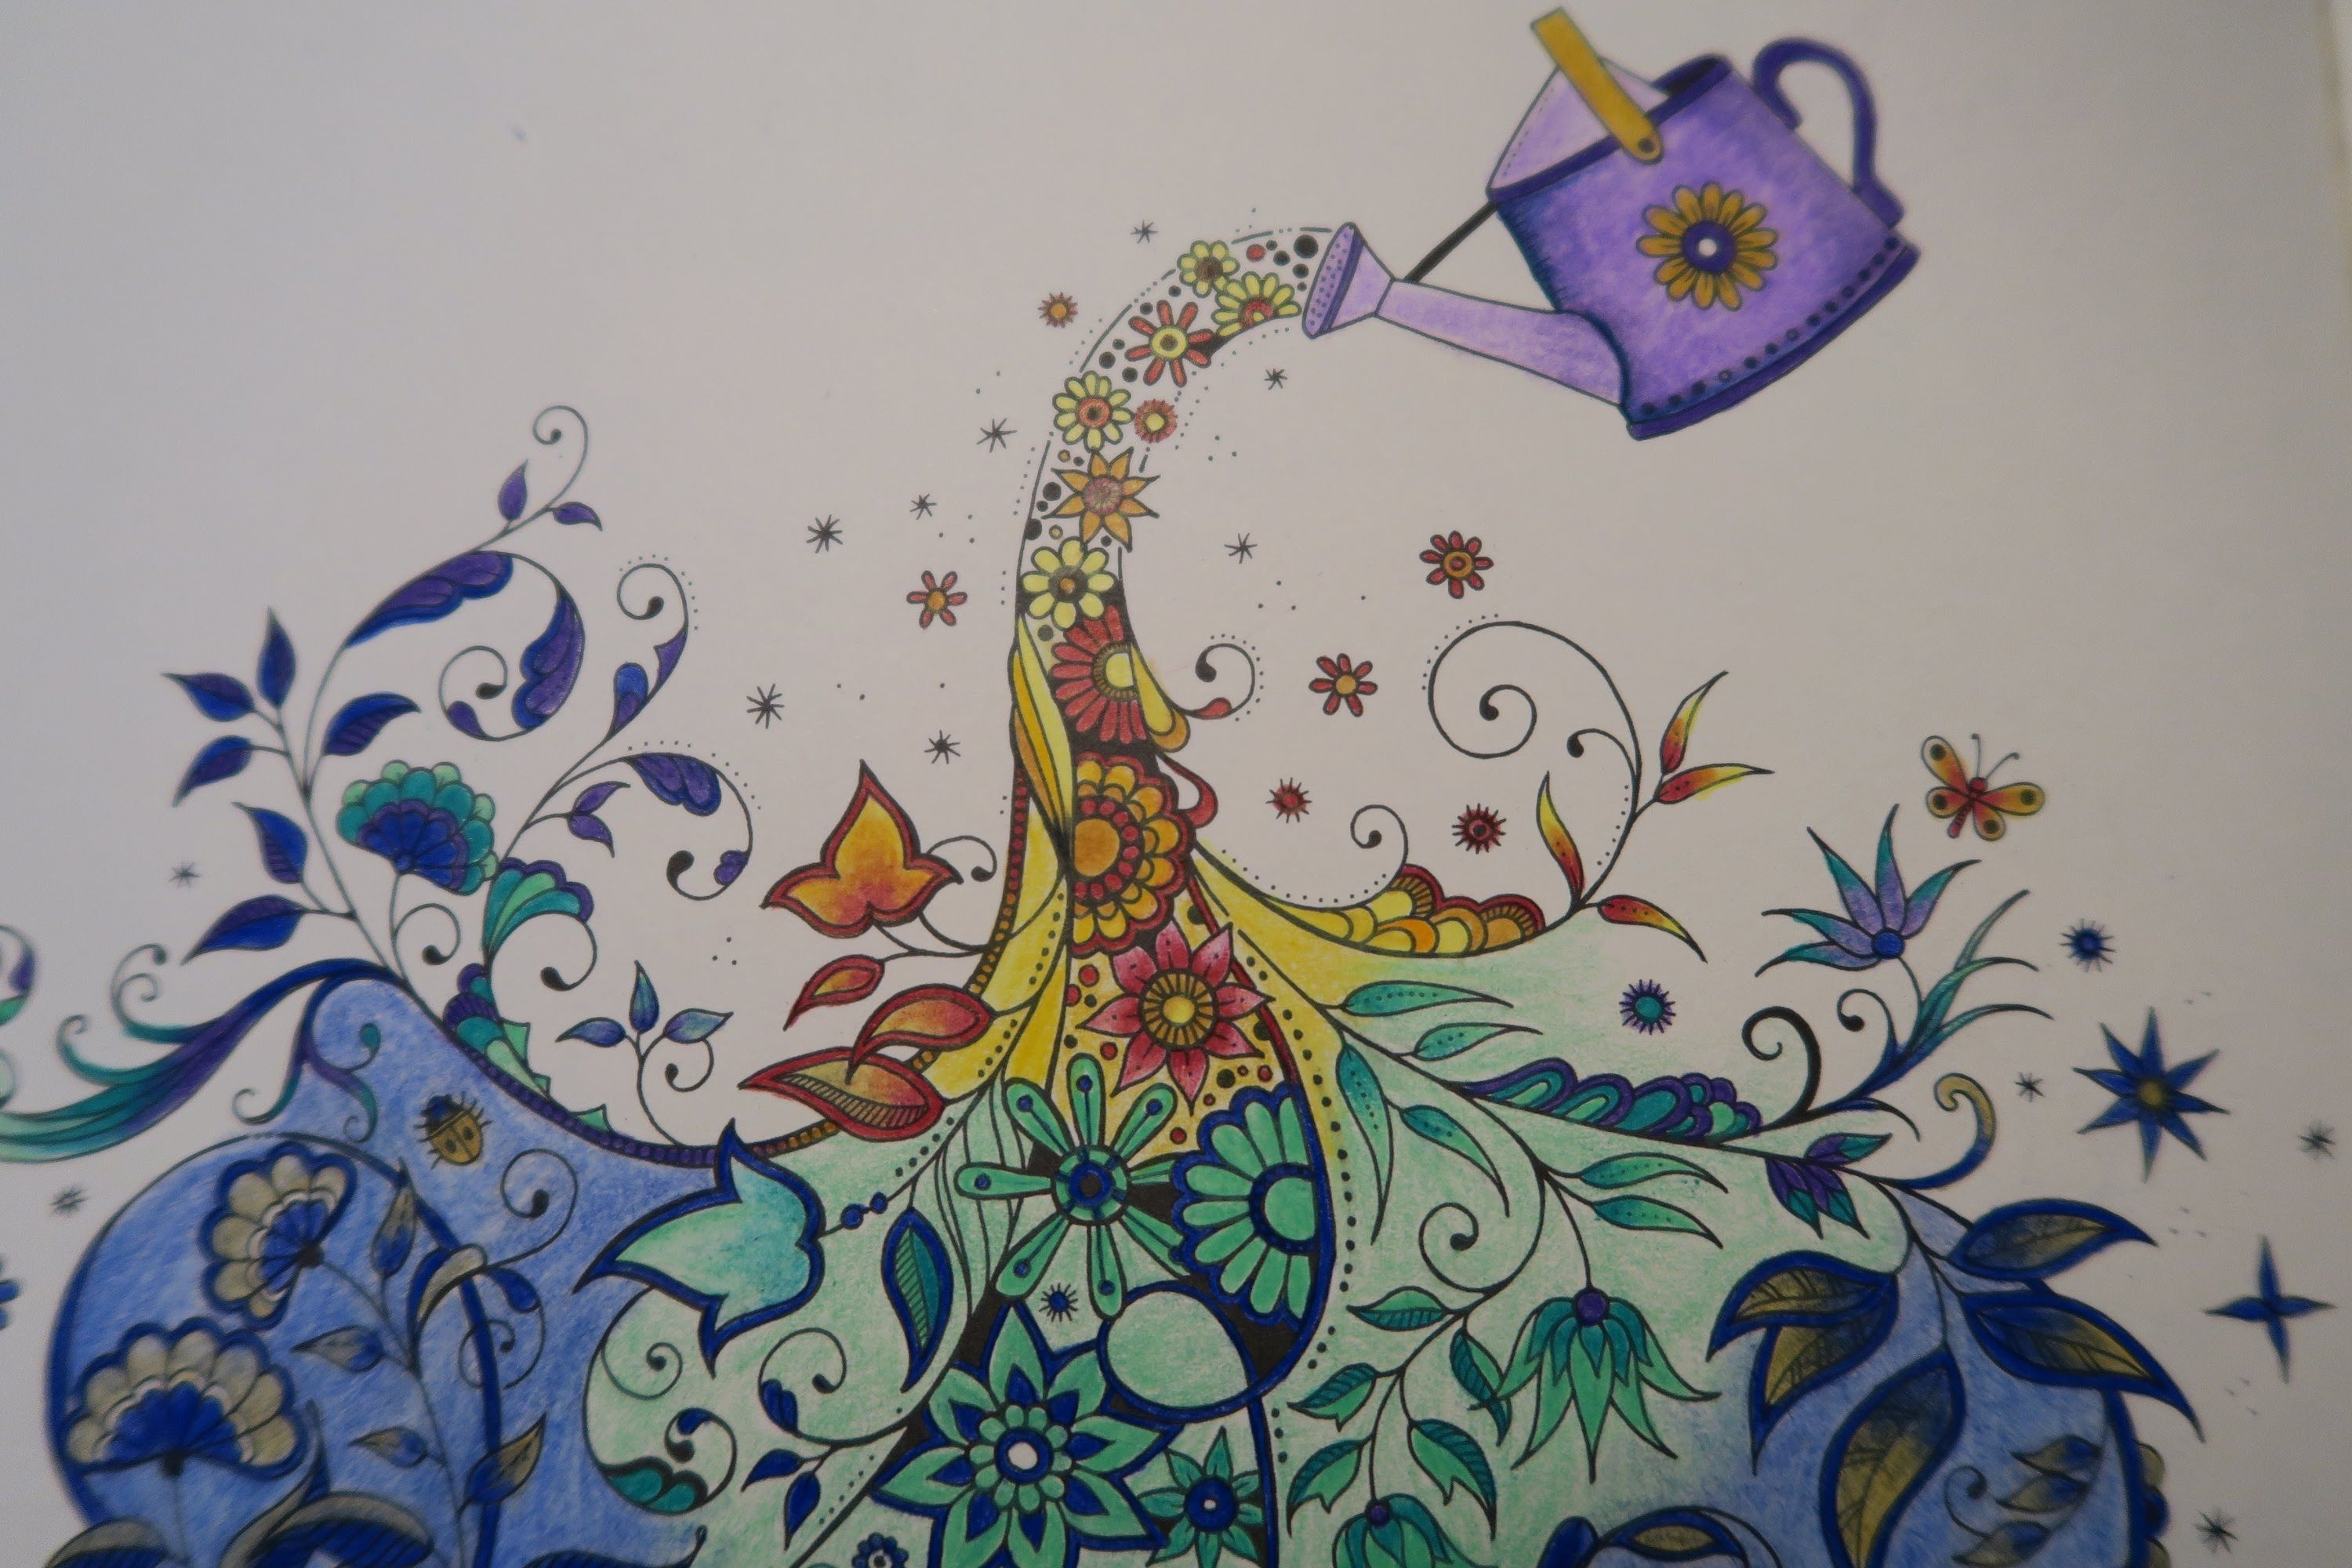 In This Video We Color A Page From Secret Garden An Inky Treasure Hunt And Coloring Book By Johanna Basford Adult Has 42 Single